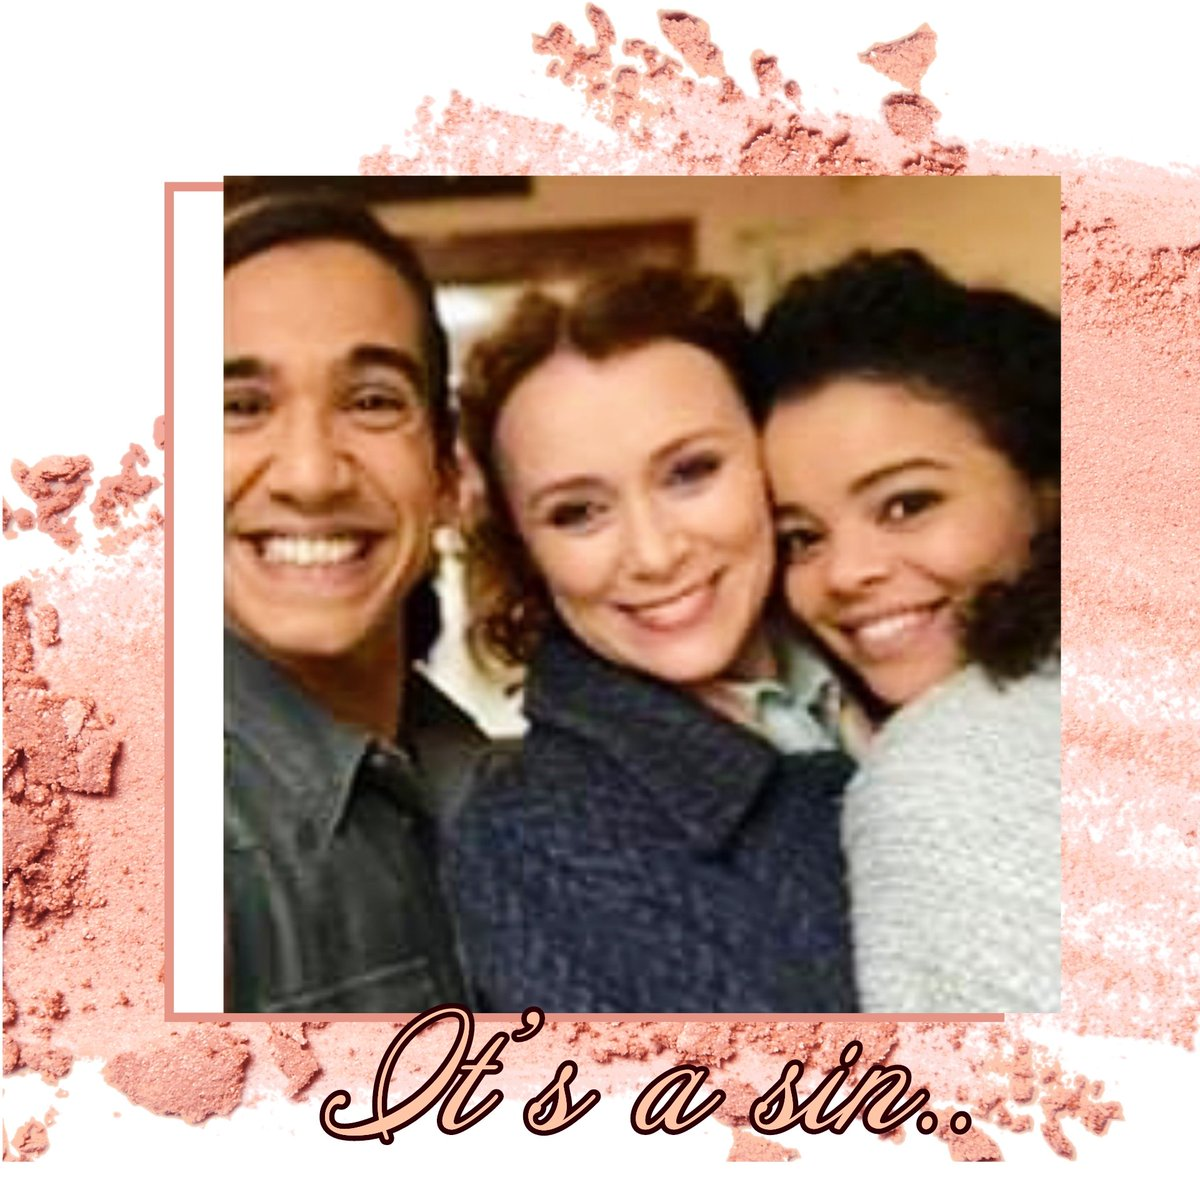 @HawesFans . Have a great Night.  It's a sin,  premiere early 2021) I hope you are very well, with that beautiful smile that you have . The Boys are beautiful. 💯❤#Hawesfans #itsasin #Misskeeleyhawes #boys #Ruselltdavies #LydiaWest #Nathanielcurtis.💯🌷🌈